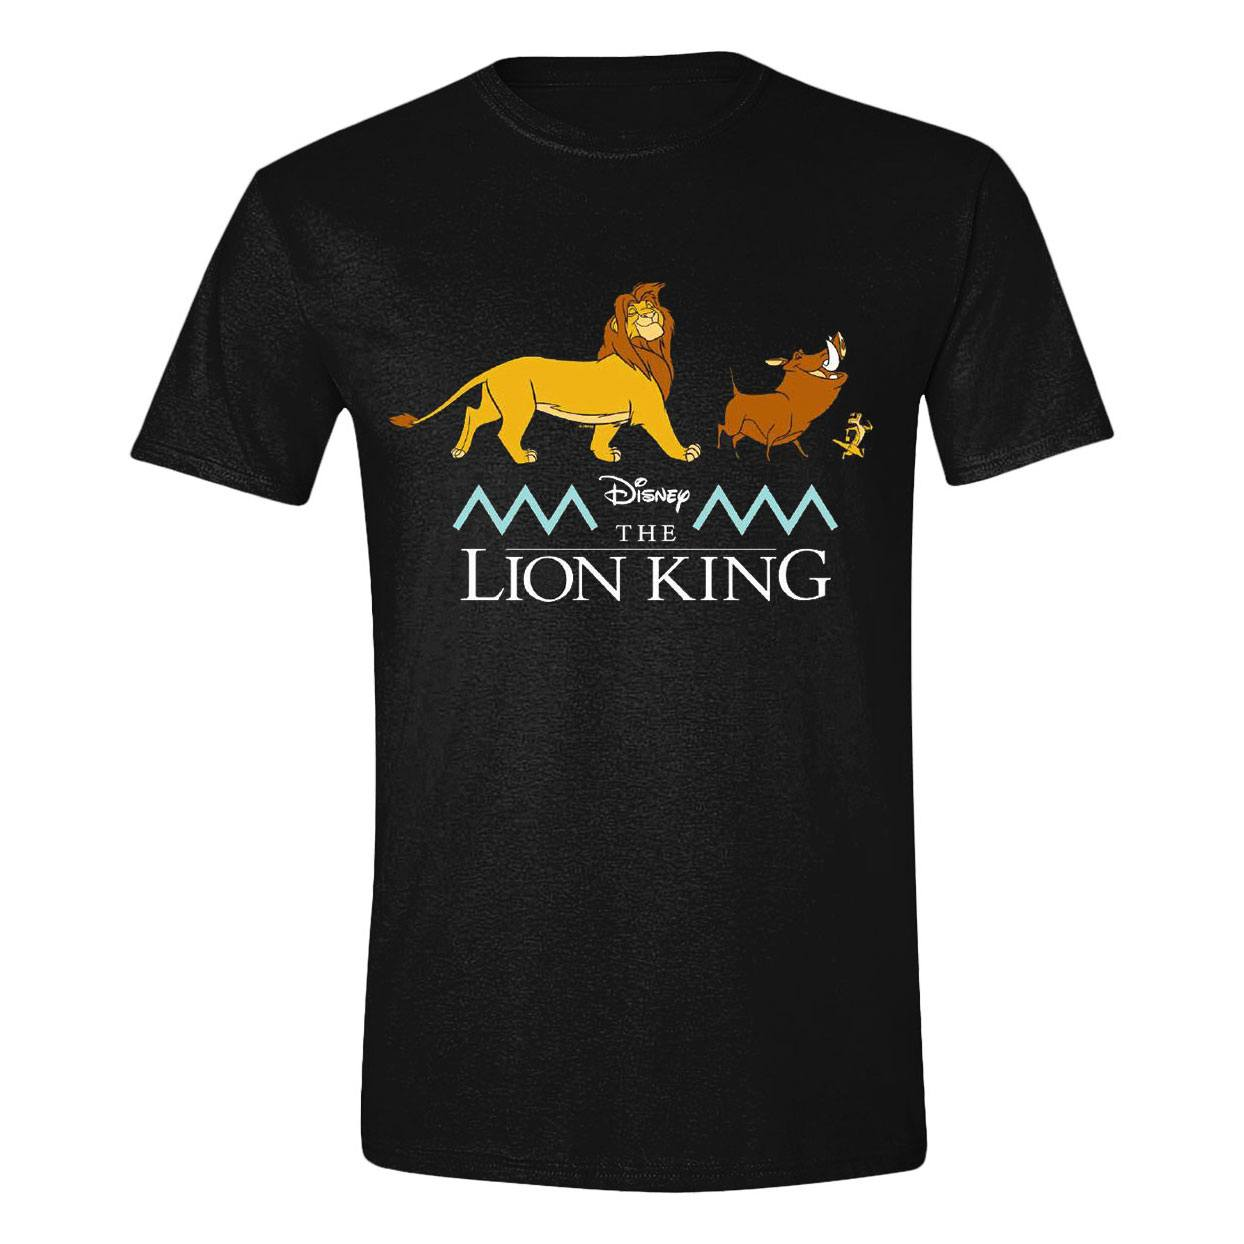 The Lion King T-Shirt Logo & Characters Size M